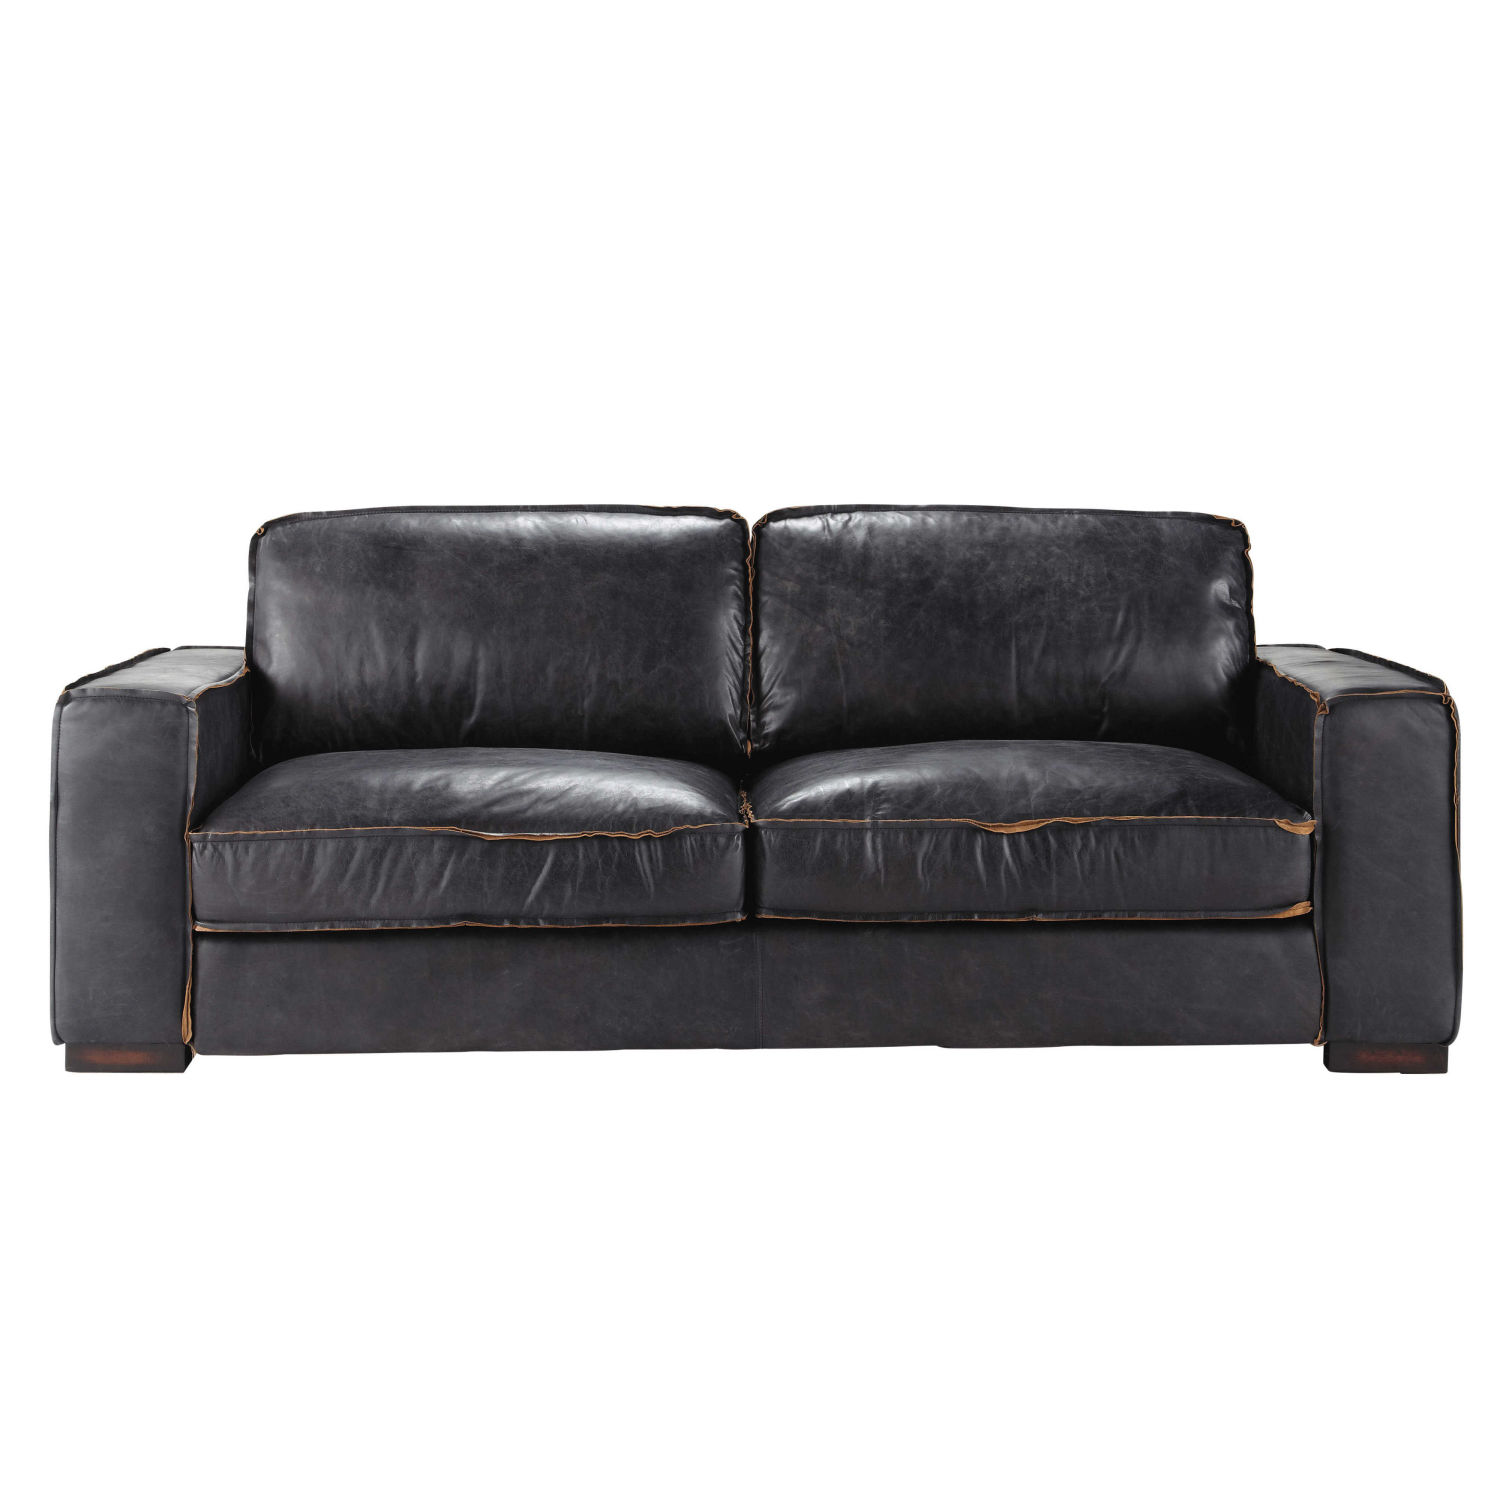 vintage sofa 3 sitzer aus leder schwarz maisons du monde. Black Bedroom Furniture Sets. Home Design Ideas